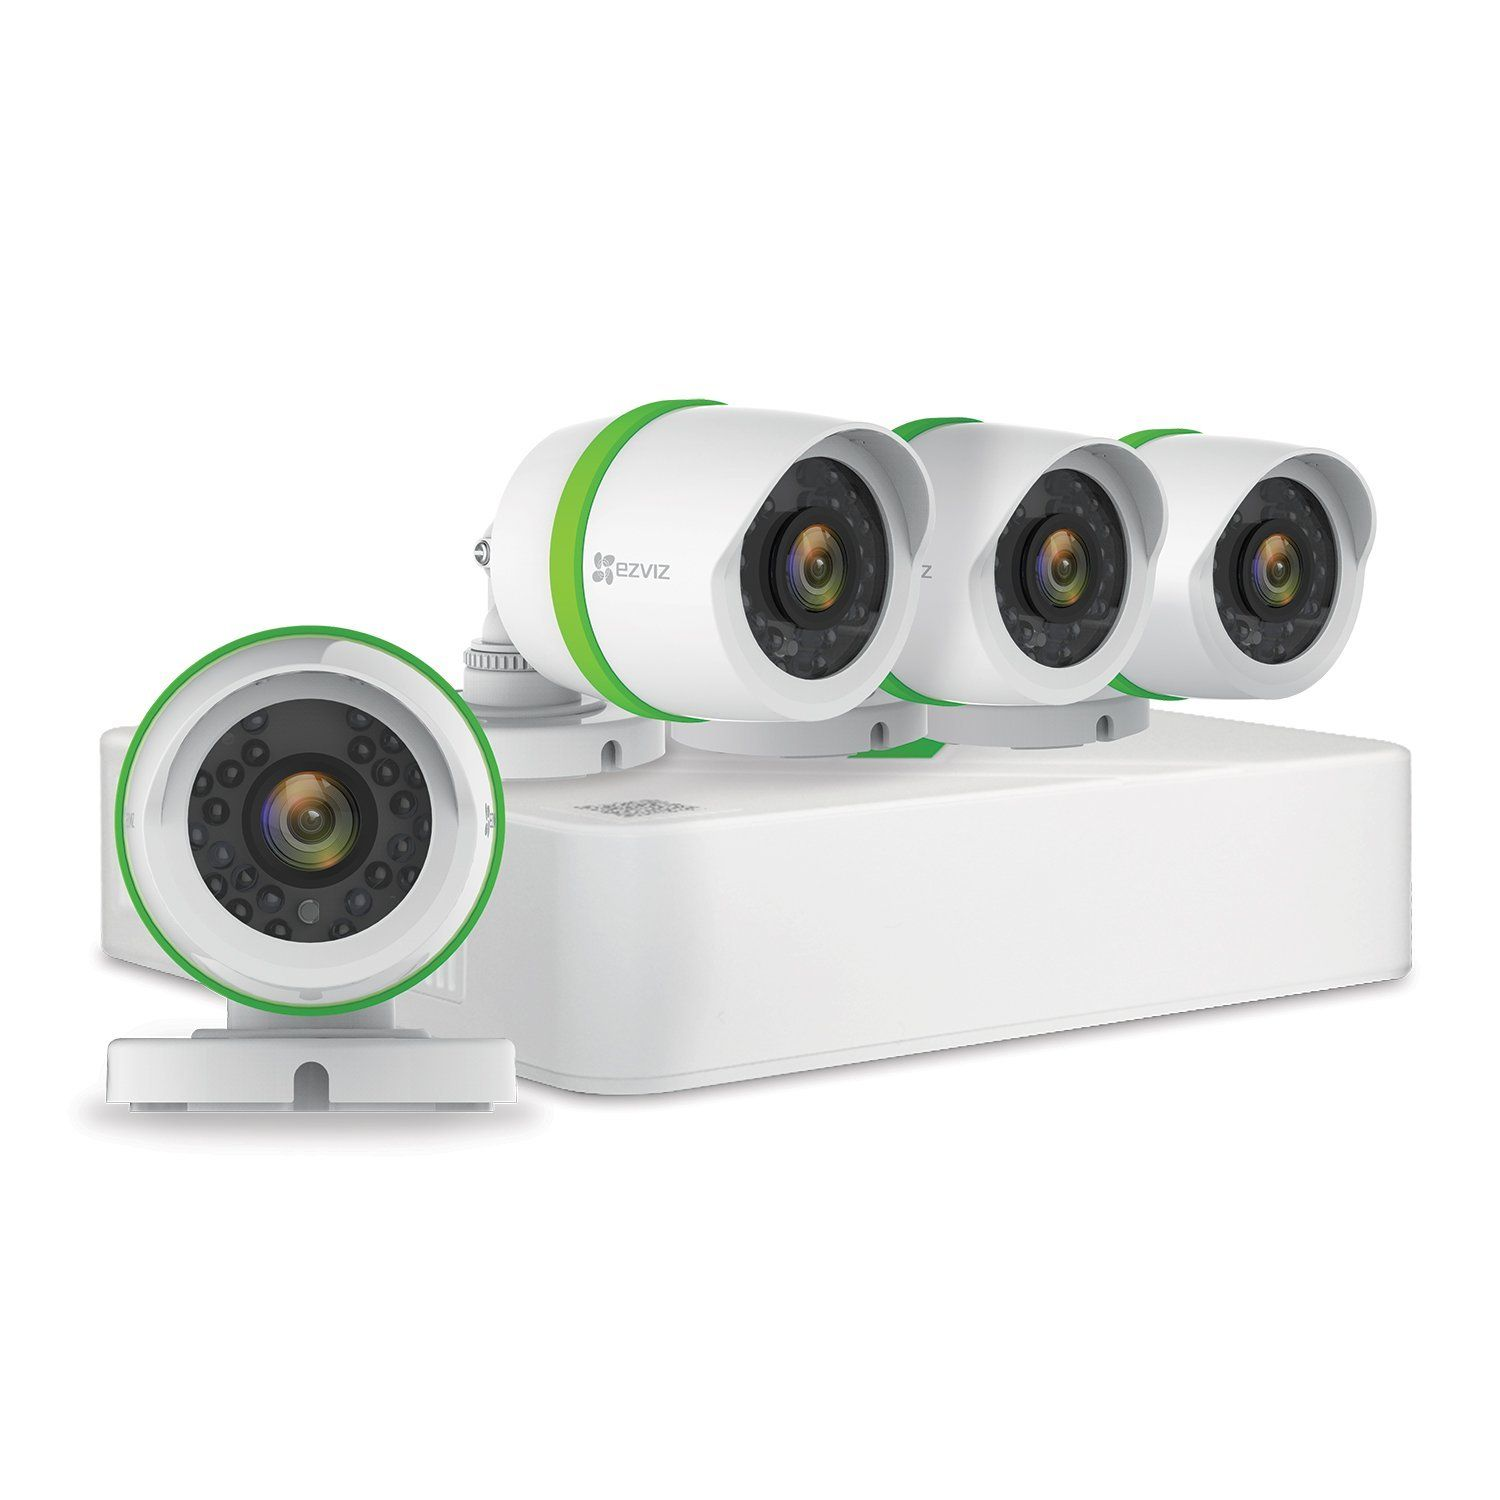 Ihomeguard 1080n Home Security Camera System 4 Outdoor 720p Hd 1500tvl 4ch Video Surveillan Security Camera System Cctv Surveillance Security Cameras For Home